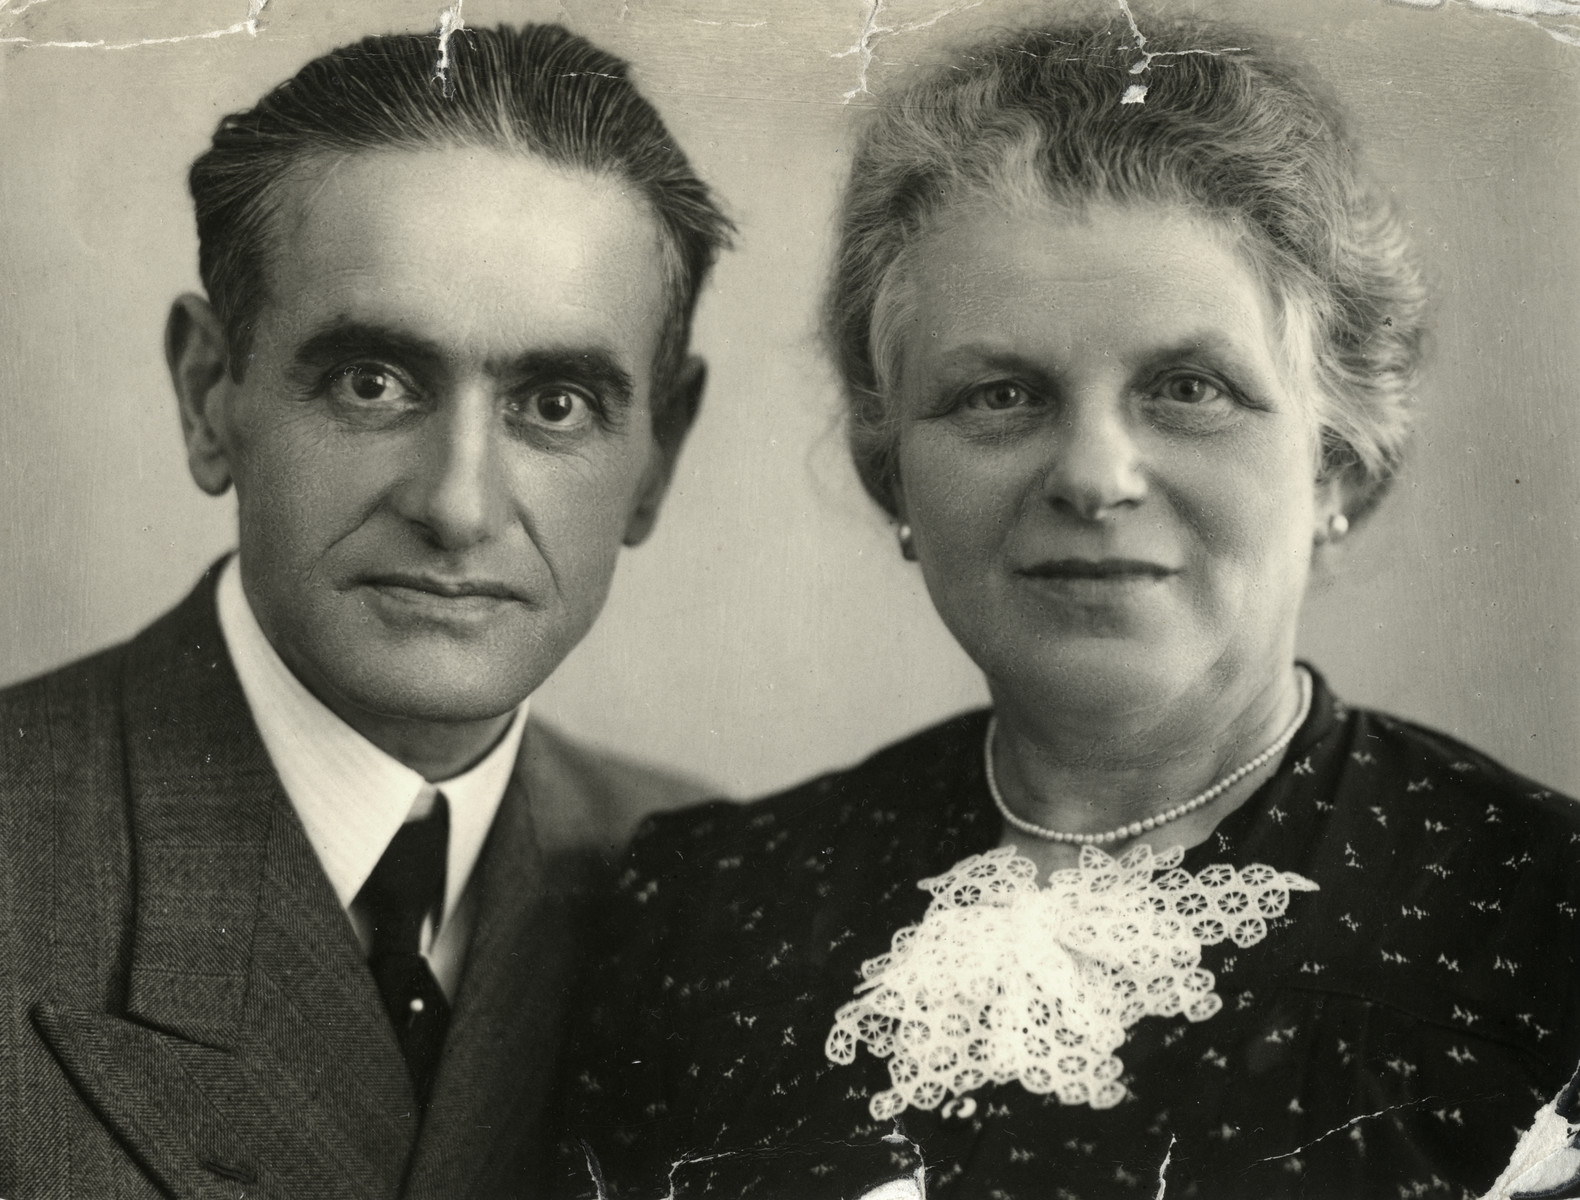 Studio portrait of Marcus and Julie Kok taken only weeks before their arrest  on December 5, 1942.